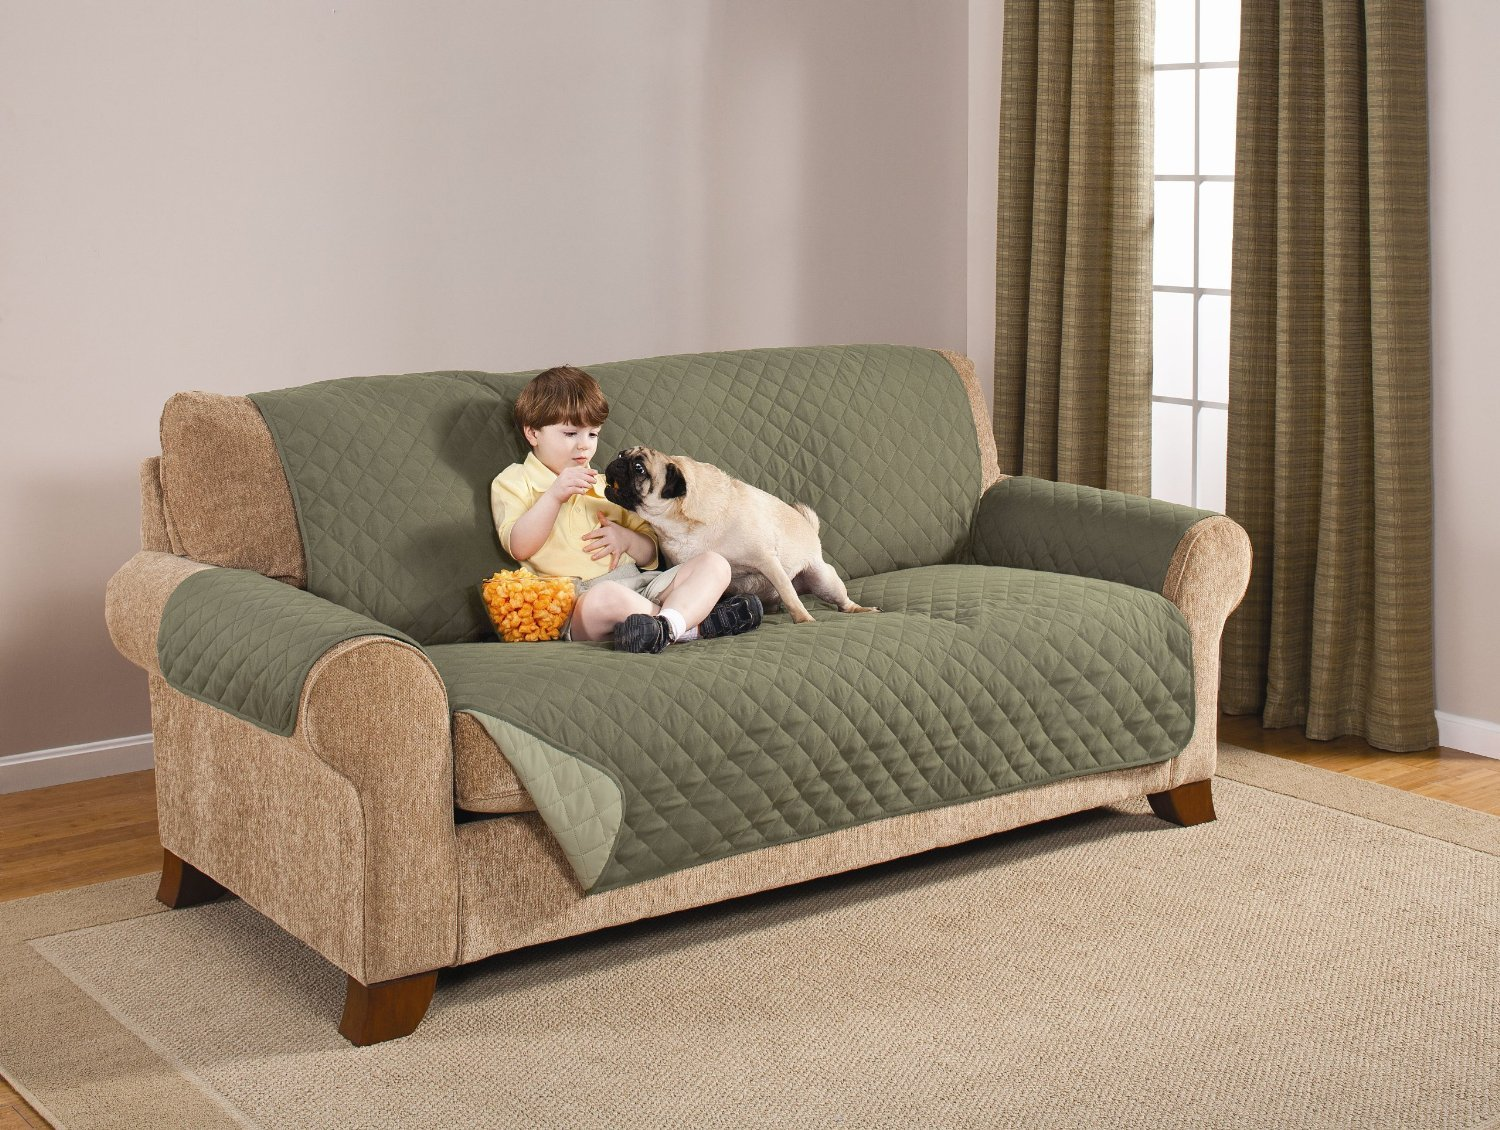 Top 10 Best Pet Couch covers That Stay in Place Couch  : 816egsMnt LSL1500 from www.dogpsycho.com size 1500 x 1130 jpeg 387kB